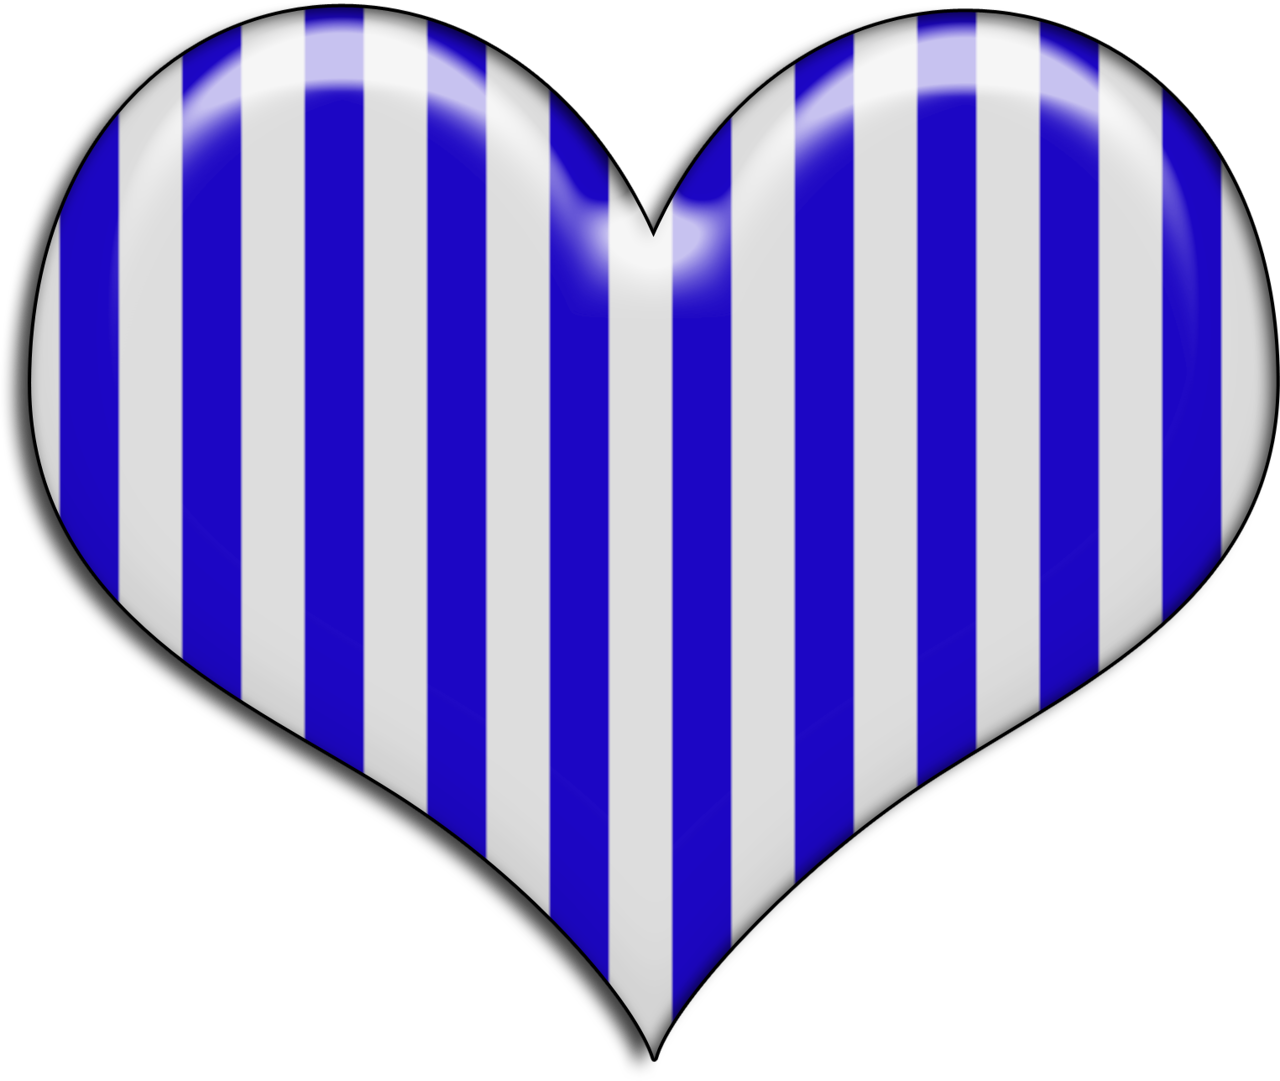 medium resolution of a blue and white striped heart